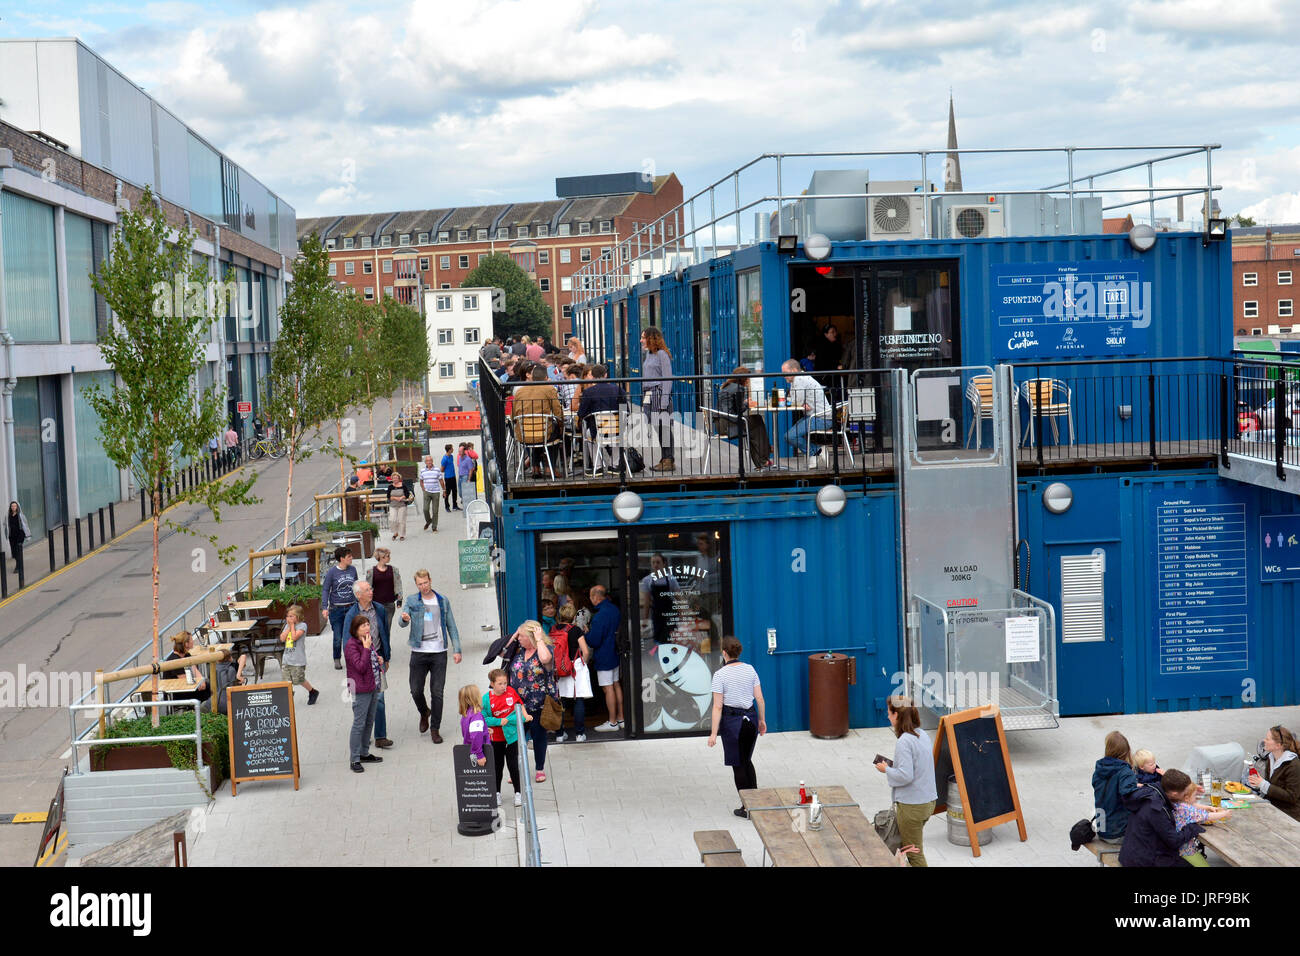 Bristol, UK. 5th August, 2017. UK Weather. On a warm summers evening in Bristol theres no finer way to relax and enjoy an evening drink and great outdoors food, in the newly installed Cargo Containers next to the M Shed on the docksideBristol of the floating Harbour. People also seen relaxing in armchairs sitting on a wall and taking a riverside trip. Mandatory Byline Robert Timoney/Alamy/Live/News - Stock Image